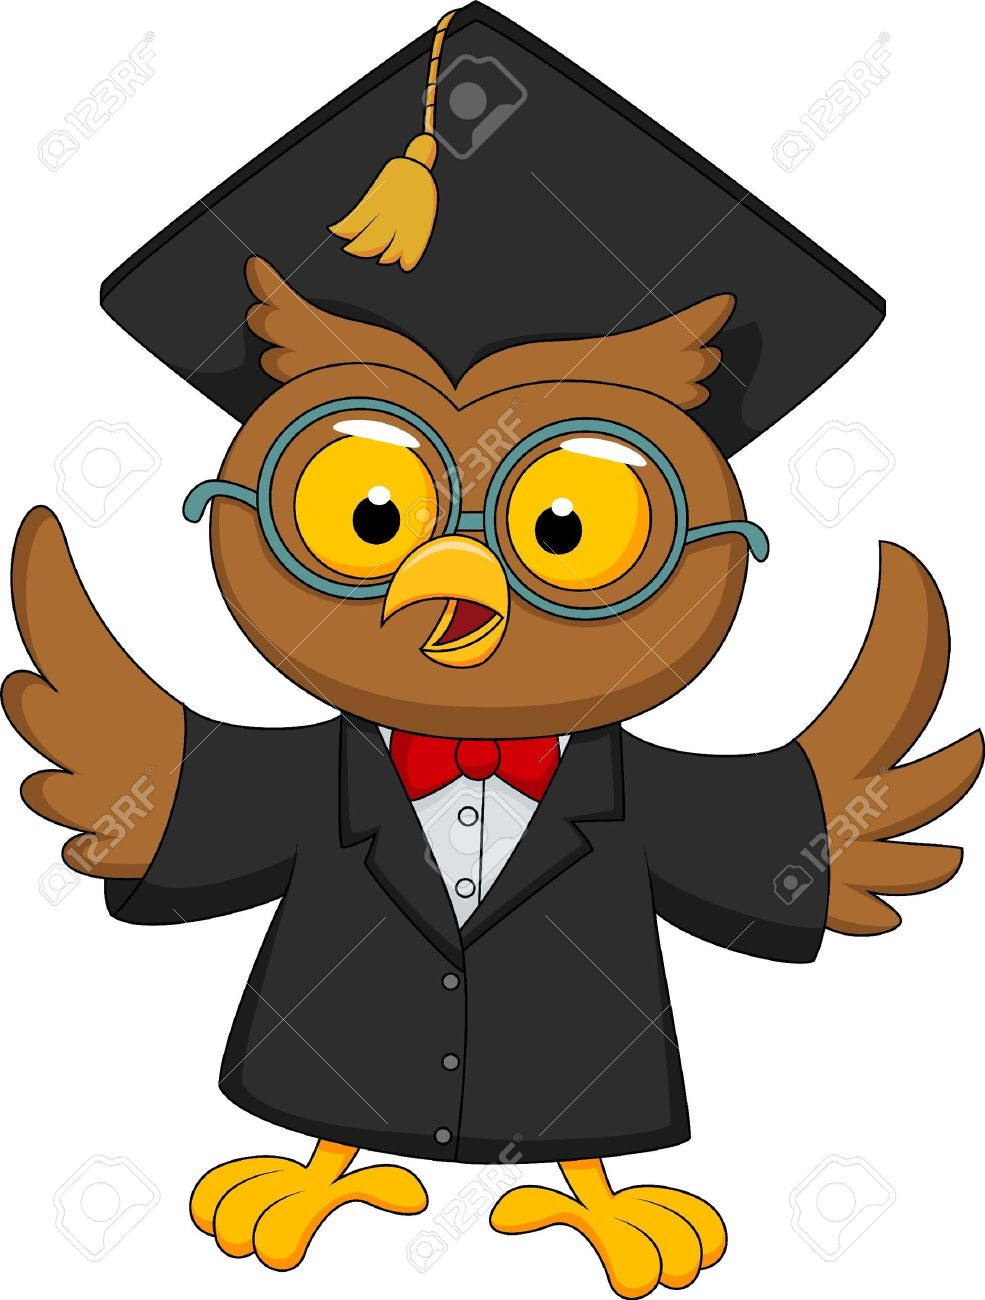 Wise owl cartoon Stock Vector - 19864790